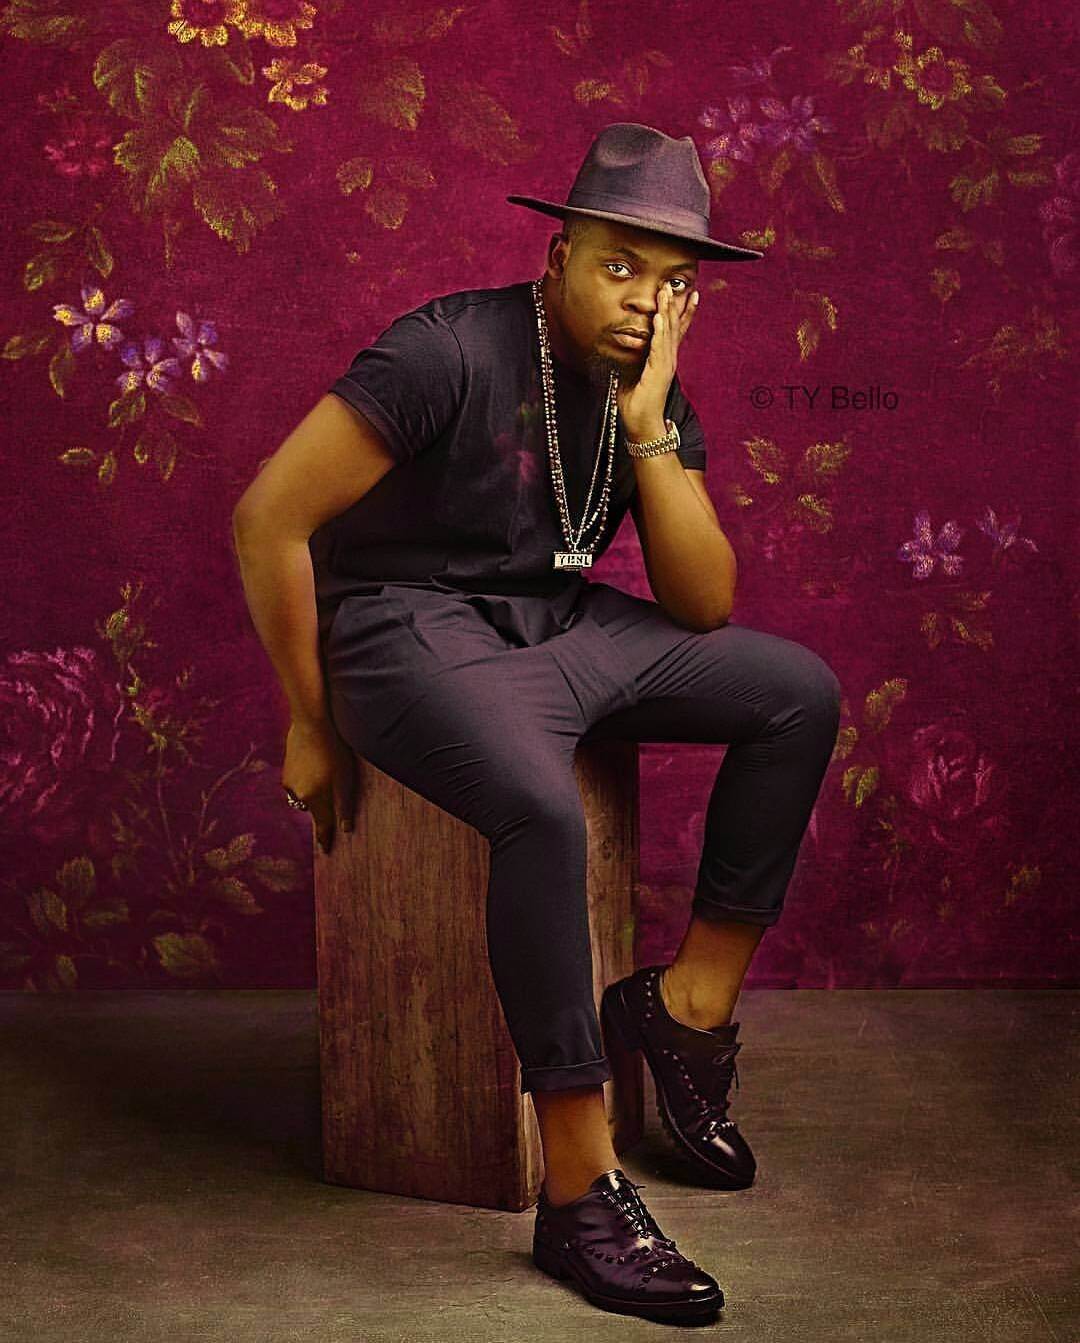 Olamide for THISDAY STYLE Afro life Andro living  @tybello